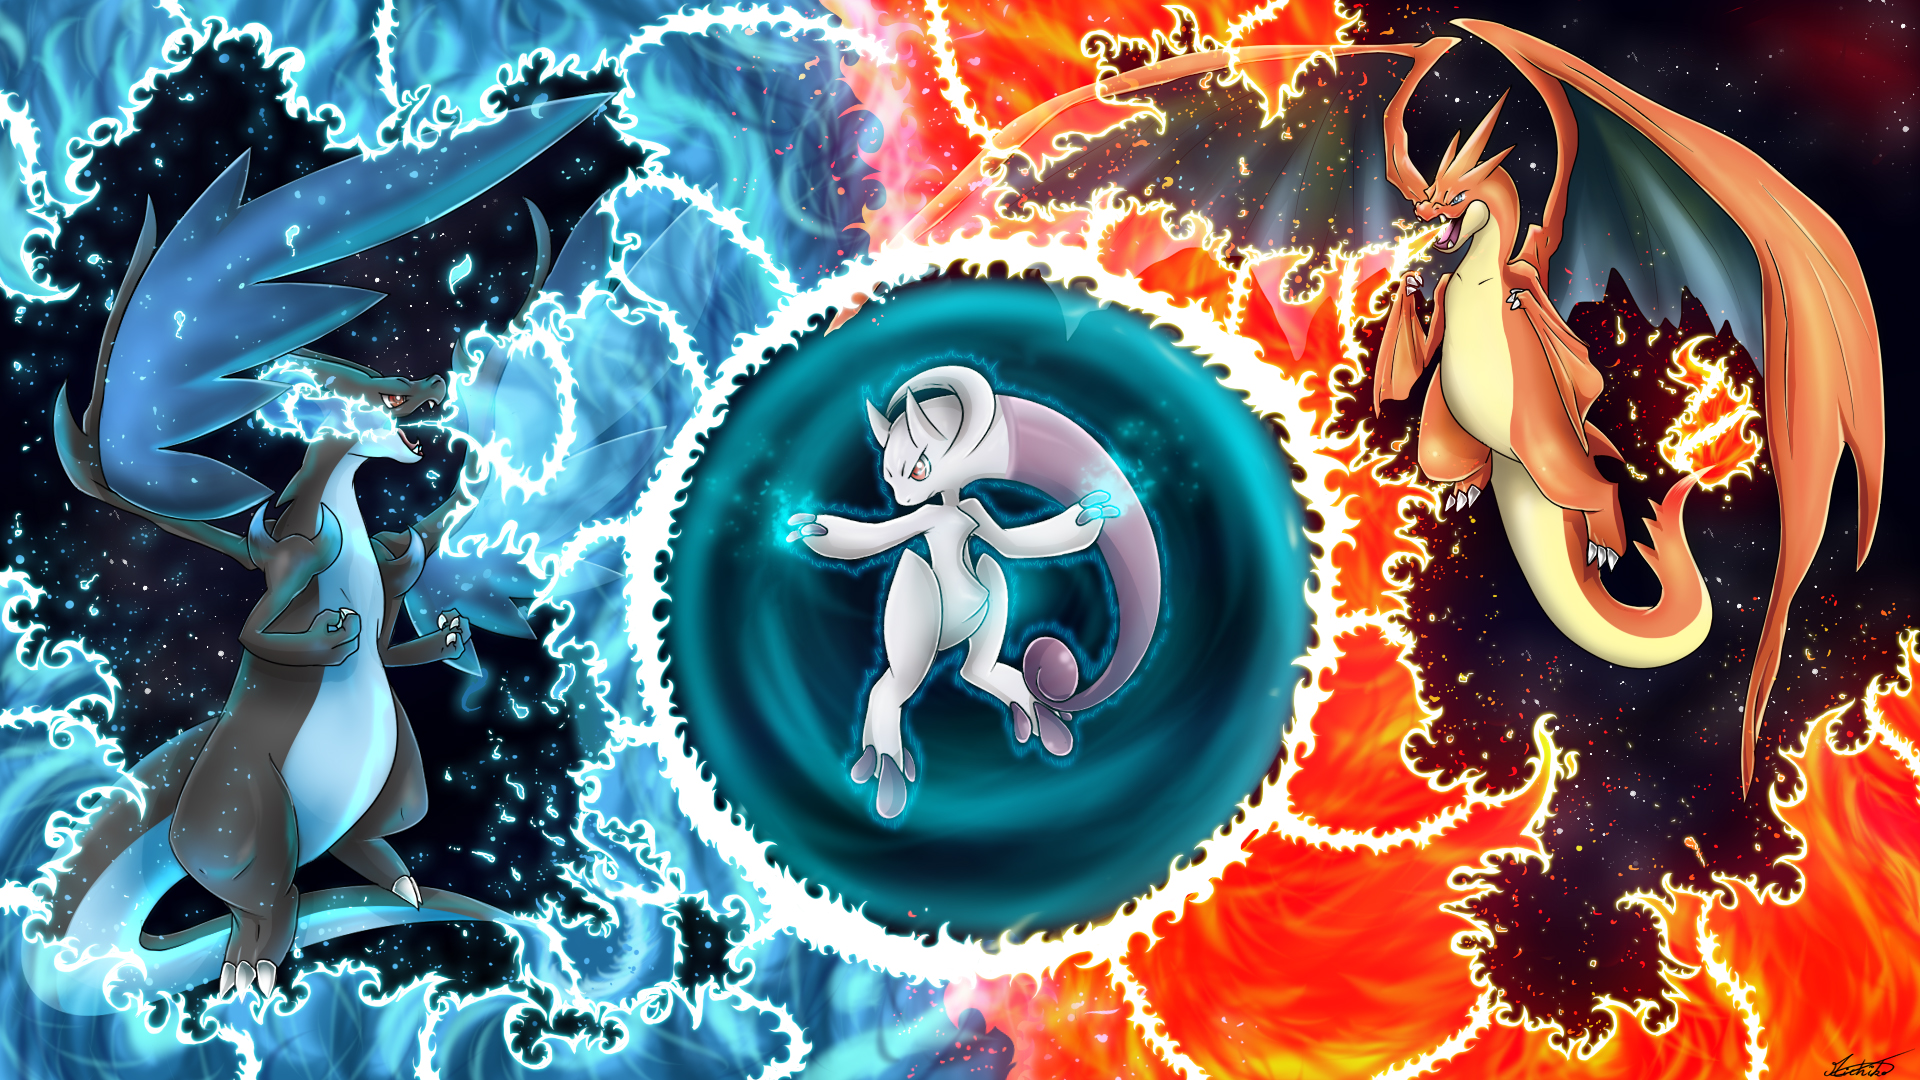 Mega Charizard X Y Vs Mewtwo By Oeuvres De Michiko On DeviantArt